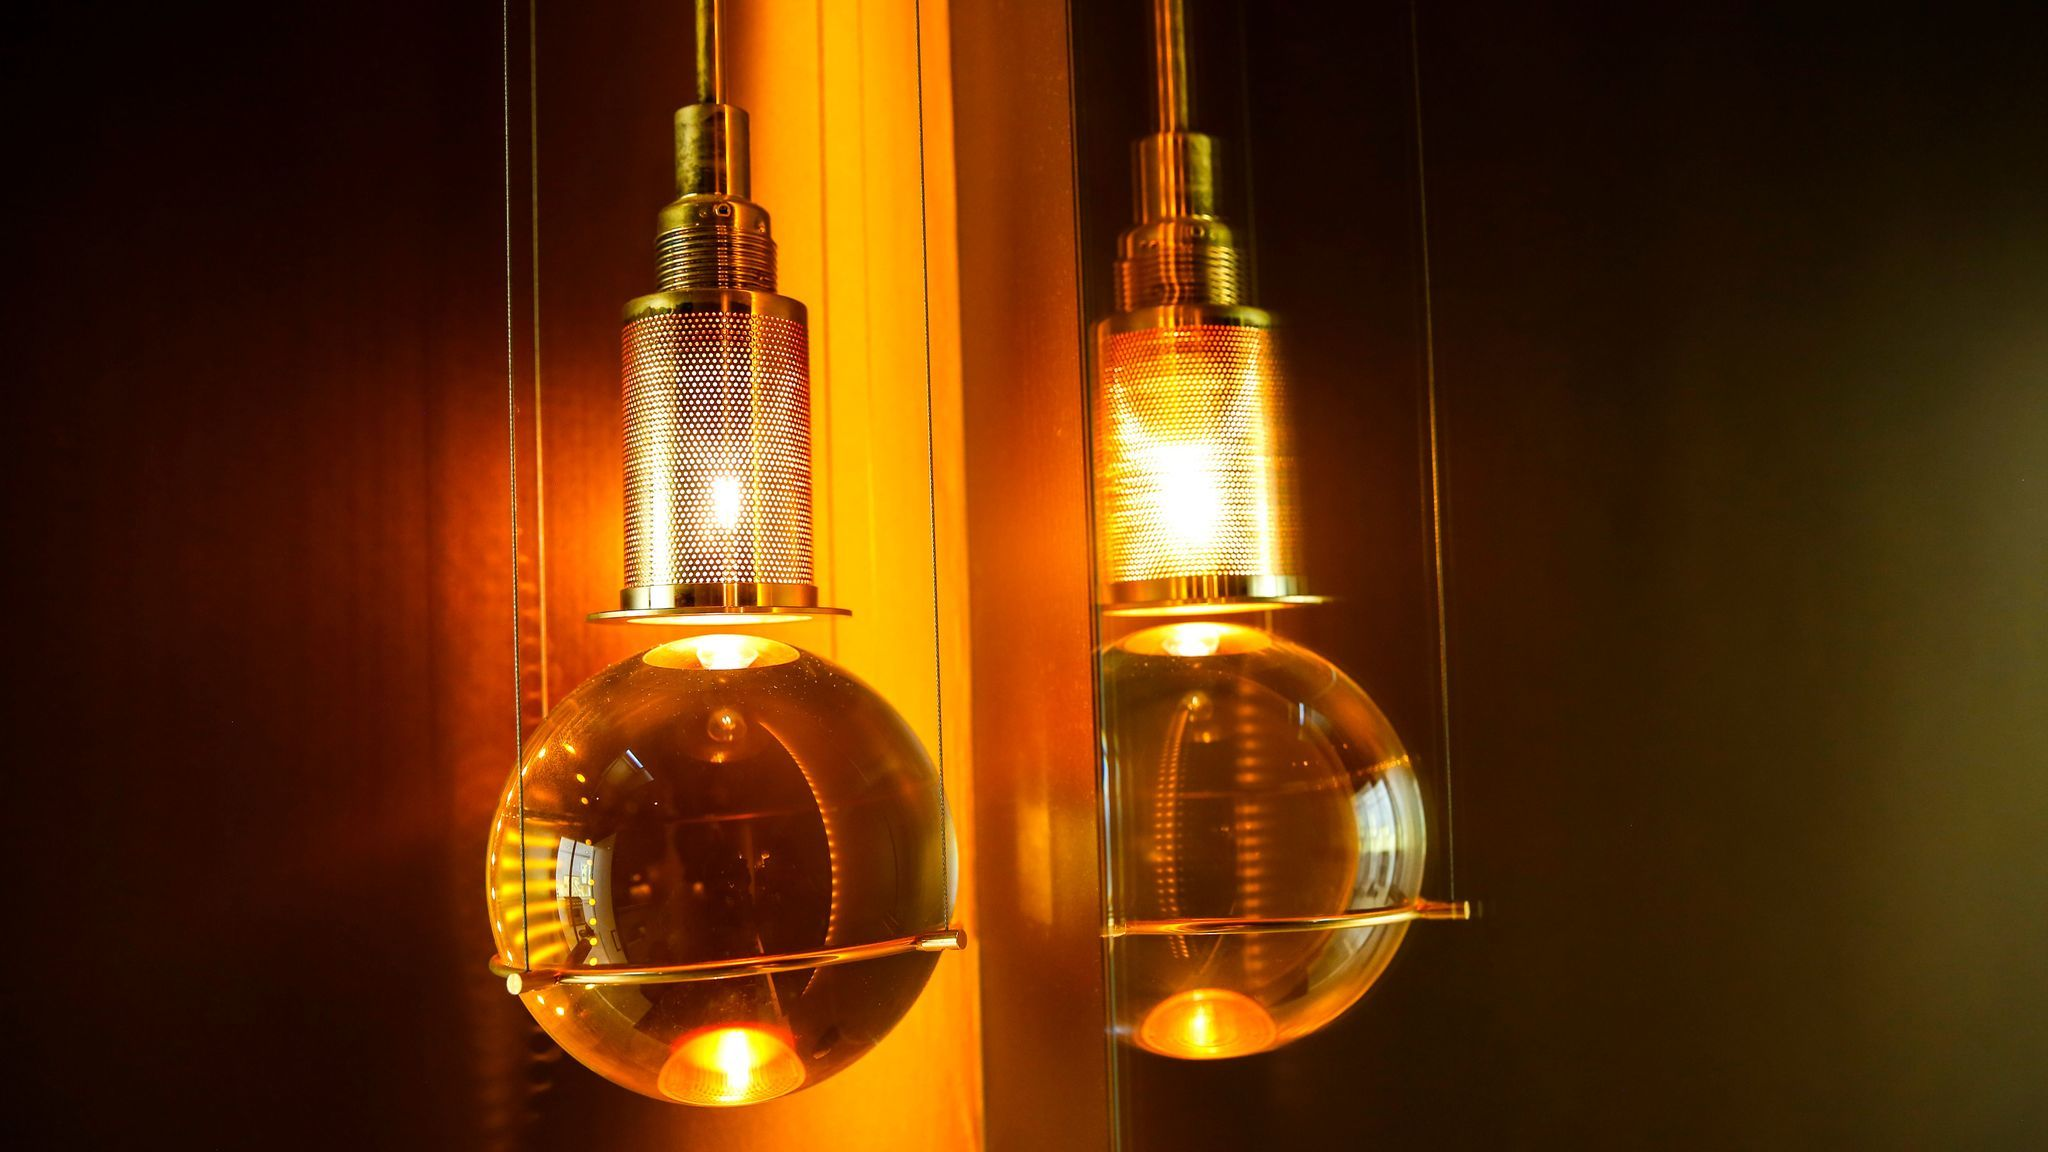 Postmodern pendant lamps by Günhter Leuchtmann hang in the powder room.